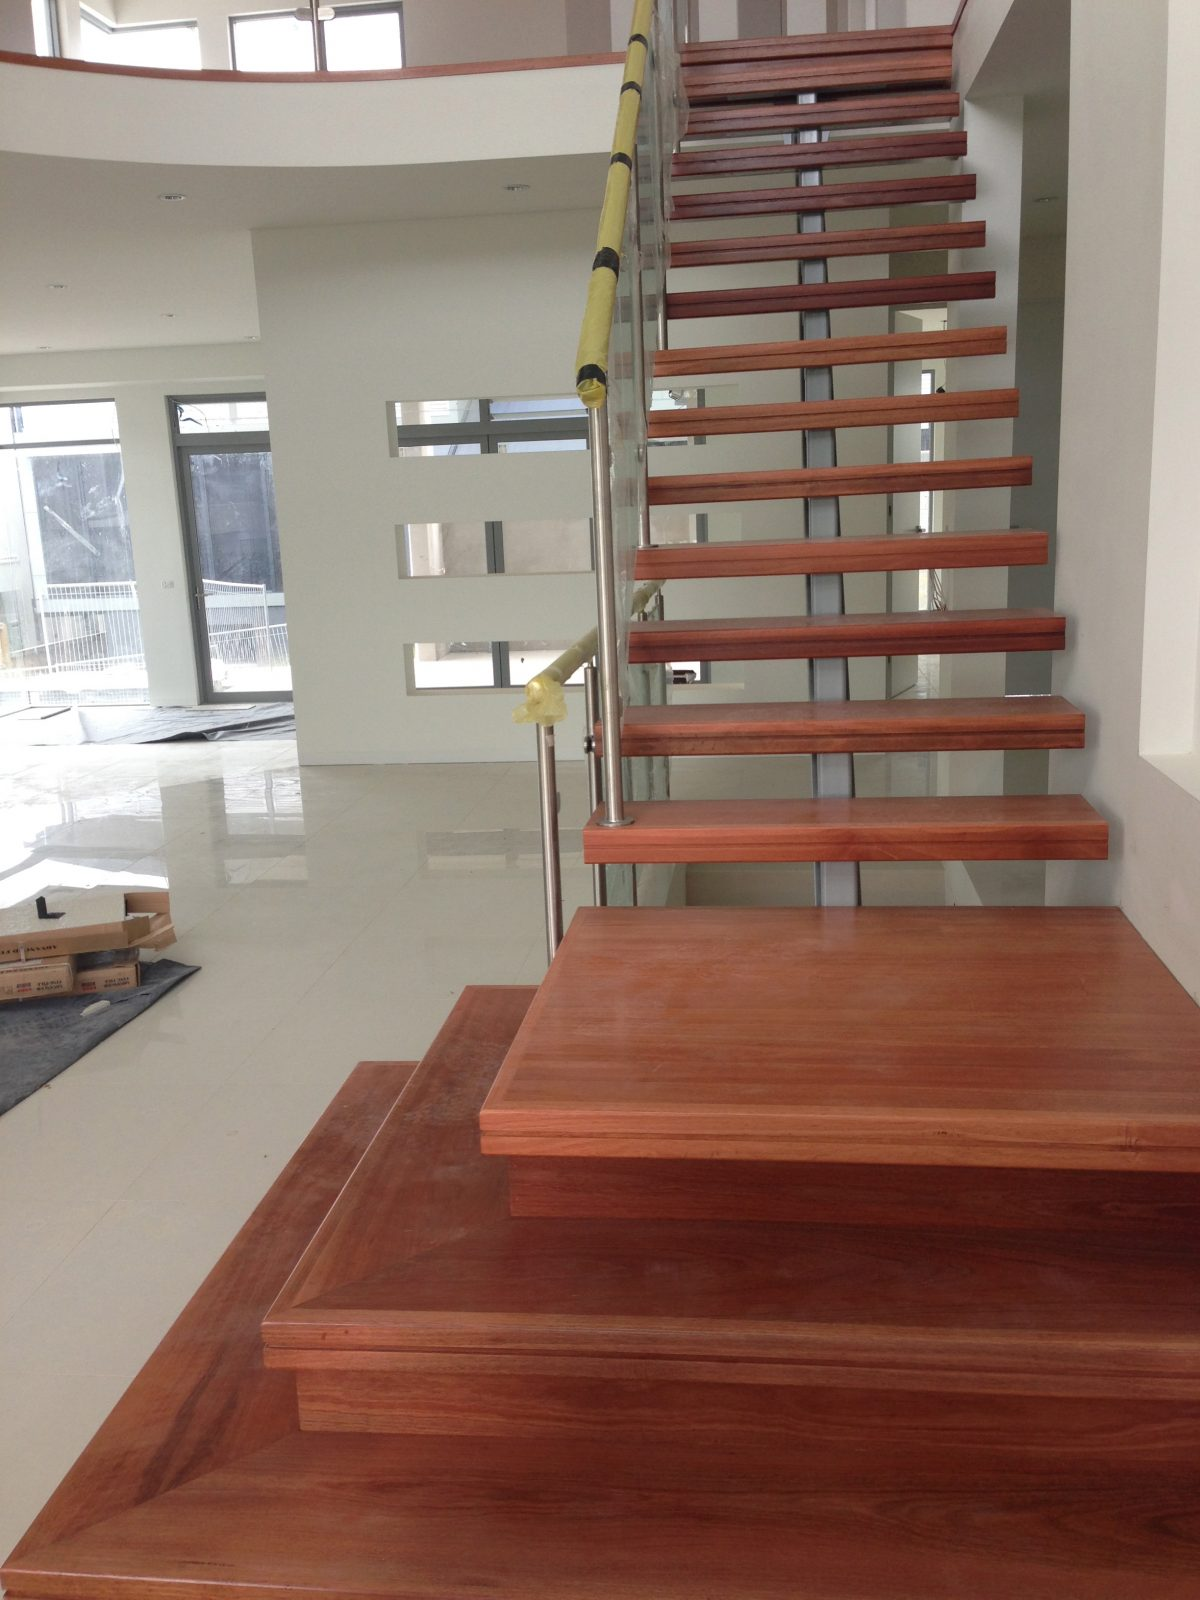 Solid treads with bespoke platform first 3 steps to create a stunning look to this metal spine staircase supplied and installed by Timber Floors Pty Ltd